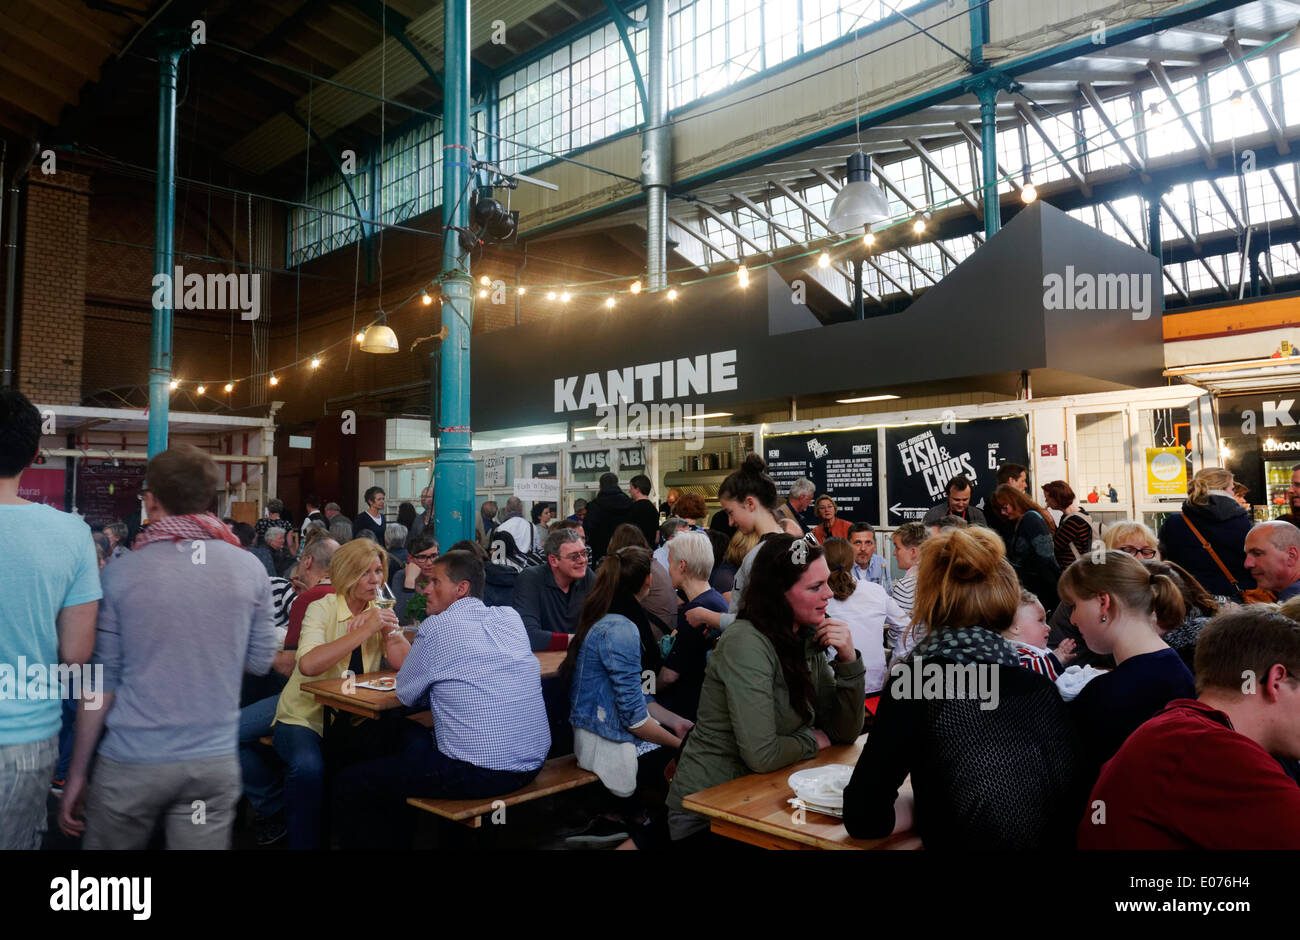 Crowds inside Markthalle 9 in trendy Kreuzberg,Berlin - Stock Image